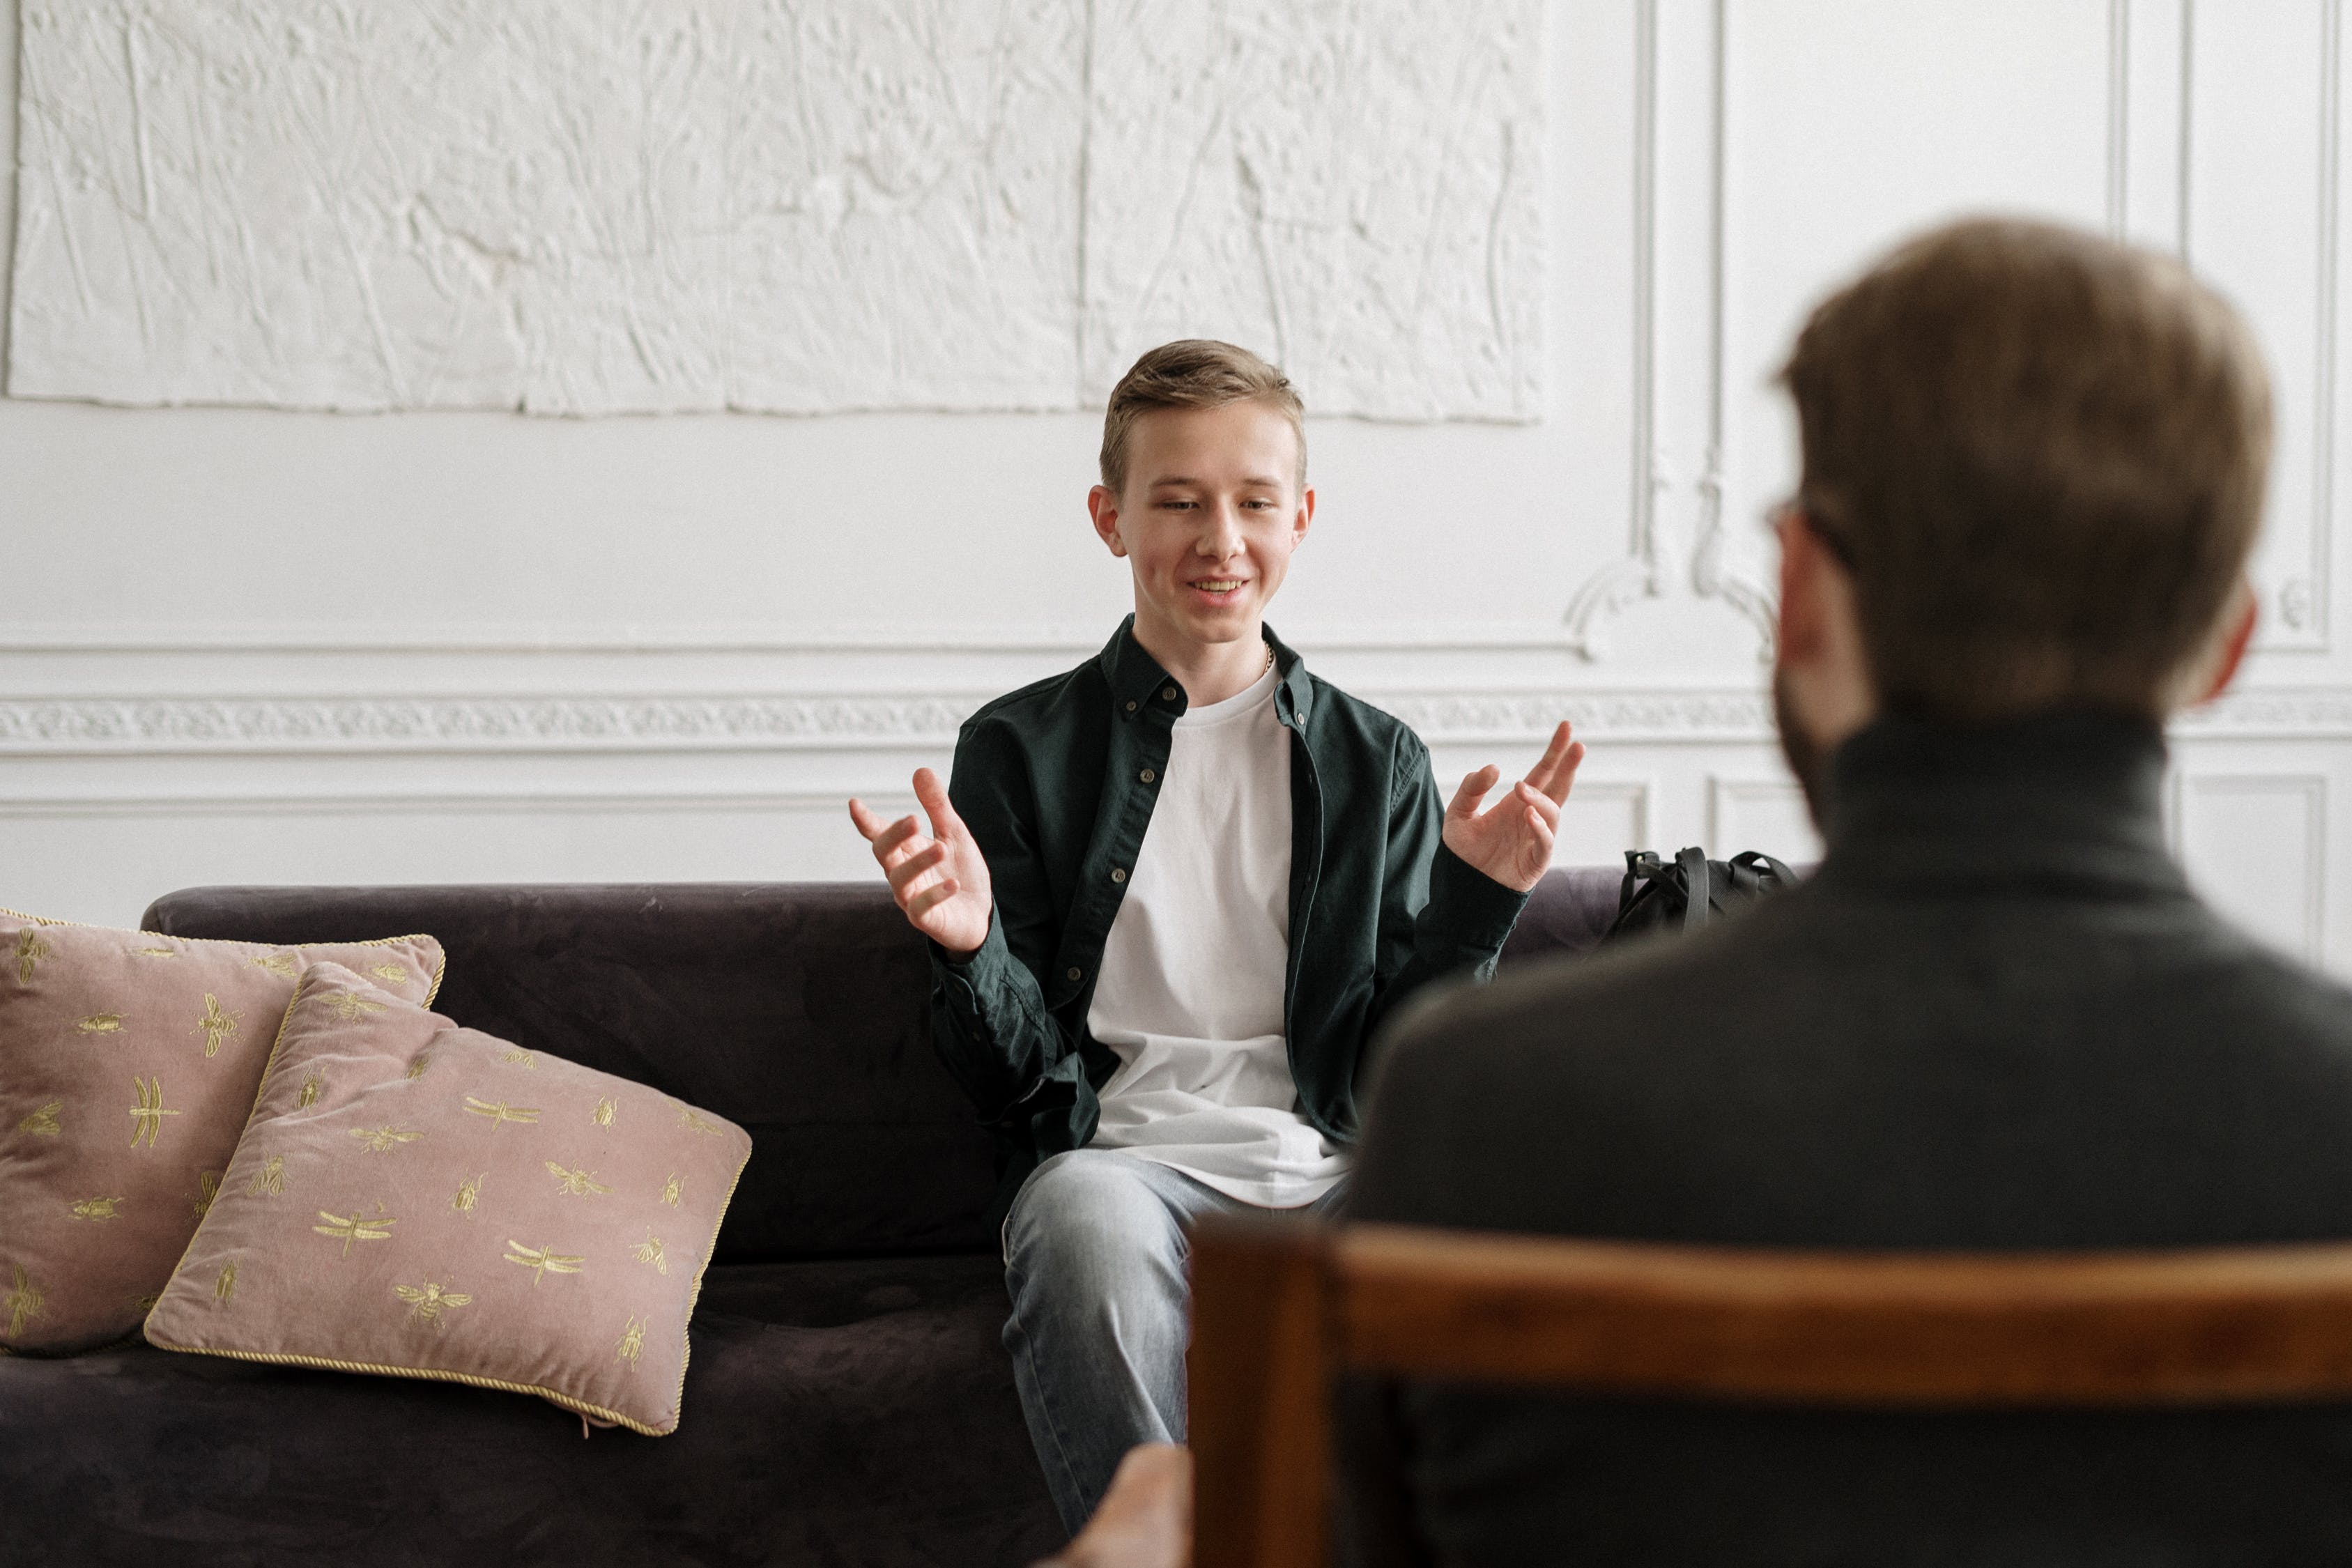 A teenage boy sits on a couch facing a therapist listening to him talk in the foreground. Used courtesy of pexels.com